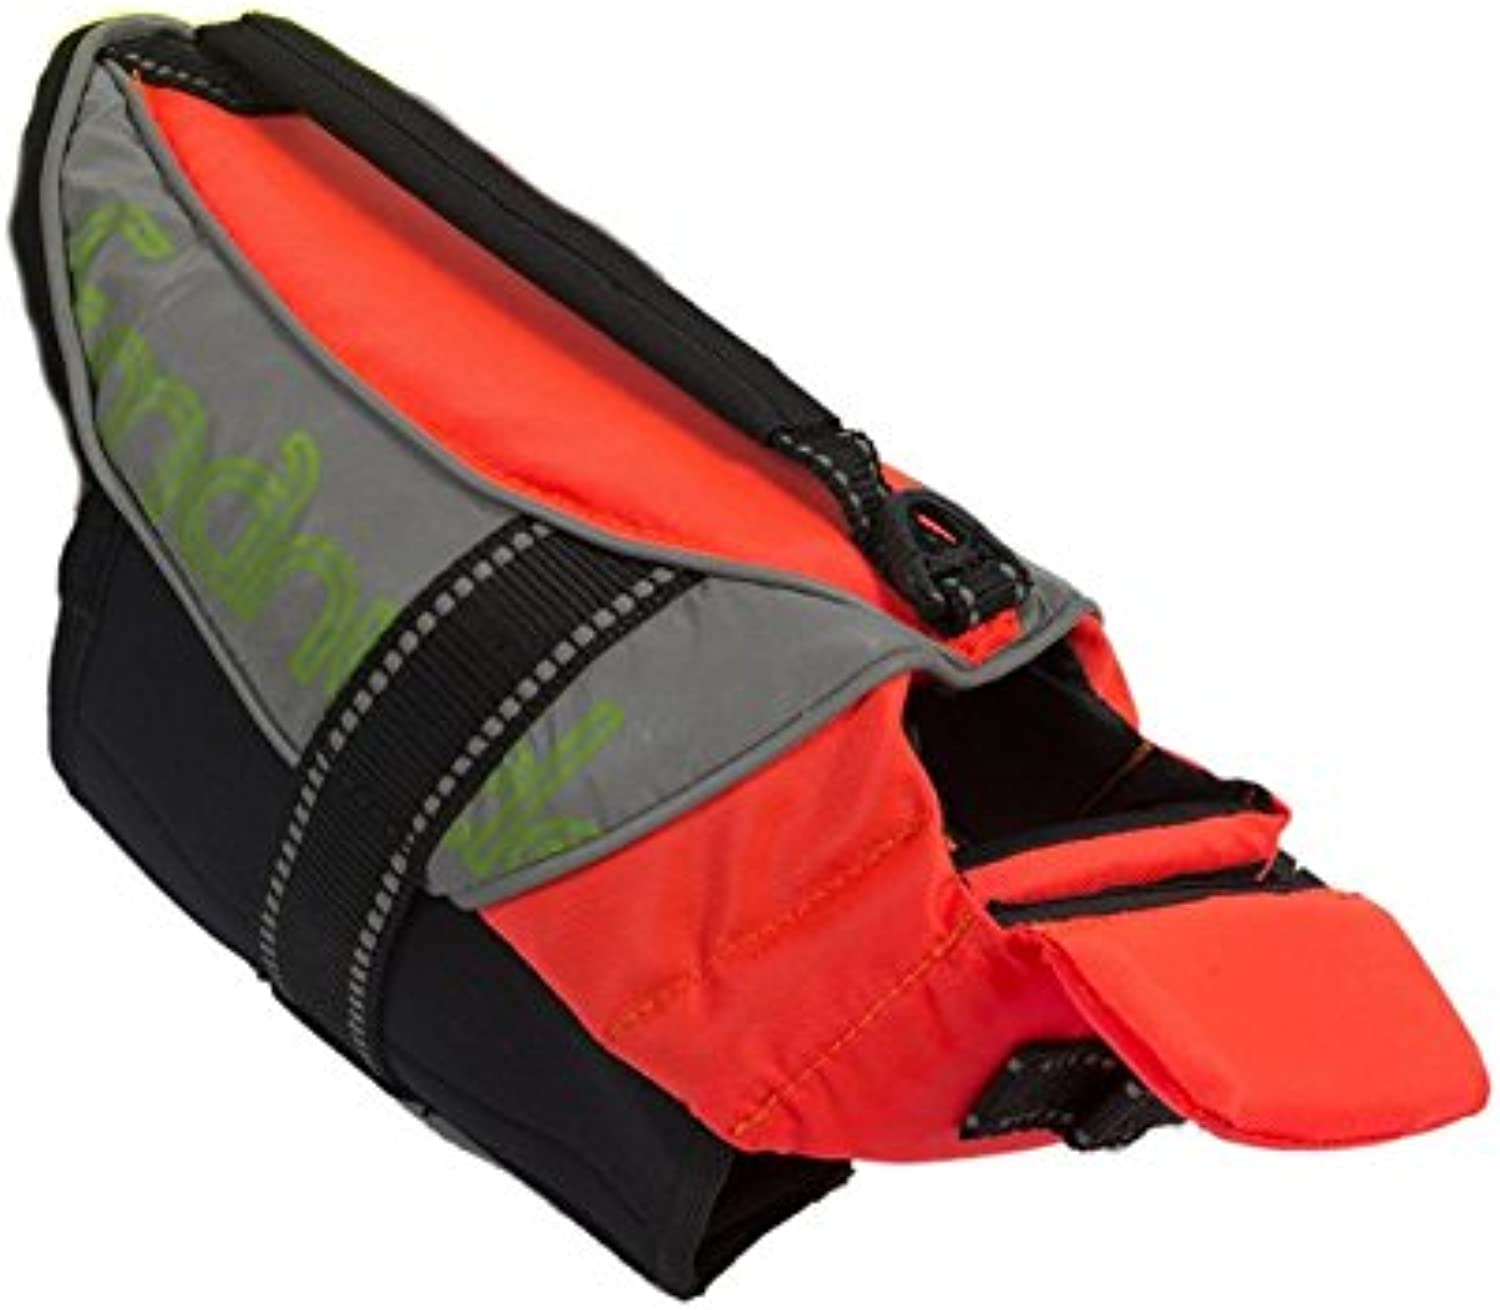 Petego Salty Dog Pet Life Vest, XSmall, Fits Girth 17 to 2Inch, orange